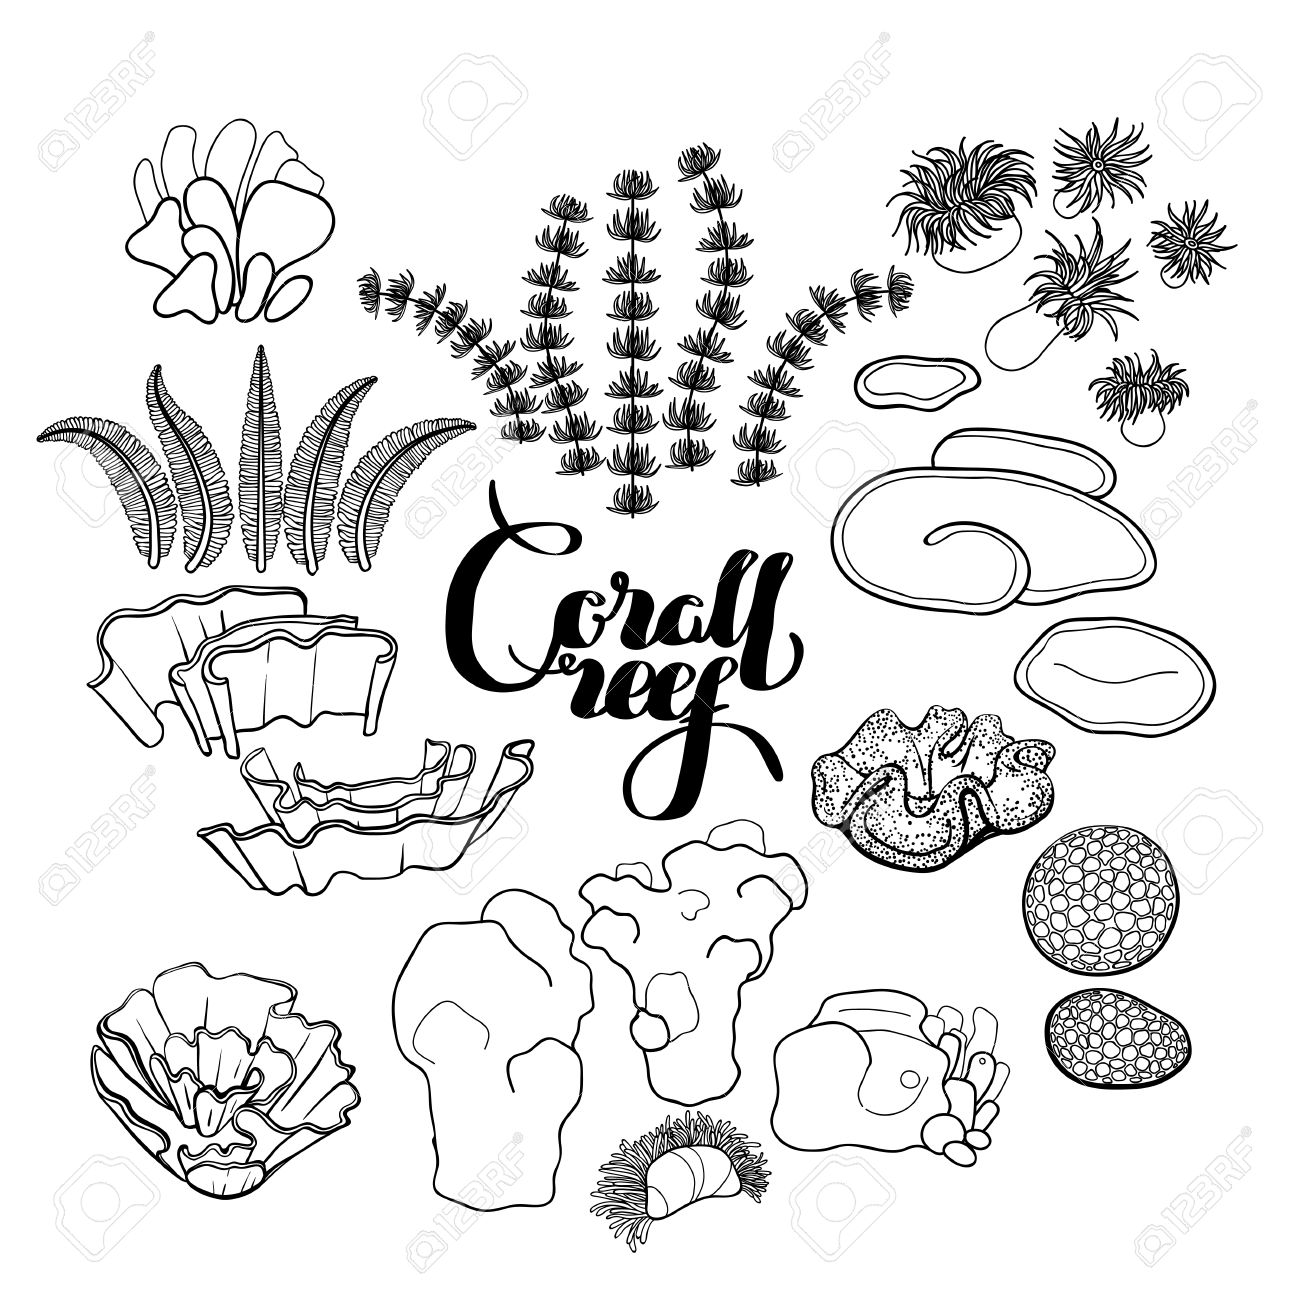 Collection Of Ocean Plants And Coral Reef Elements Drawn In